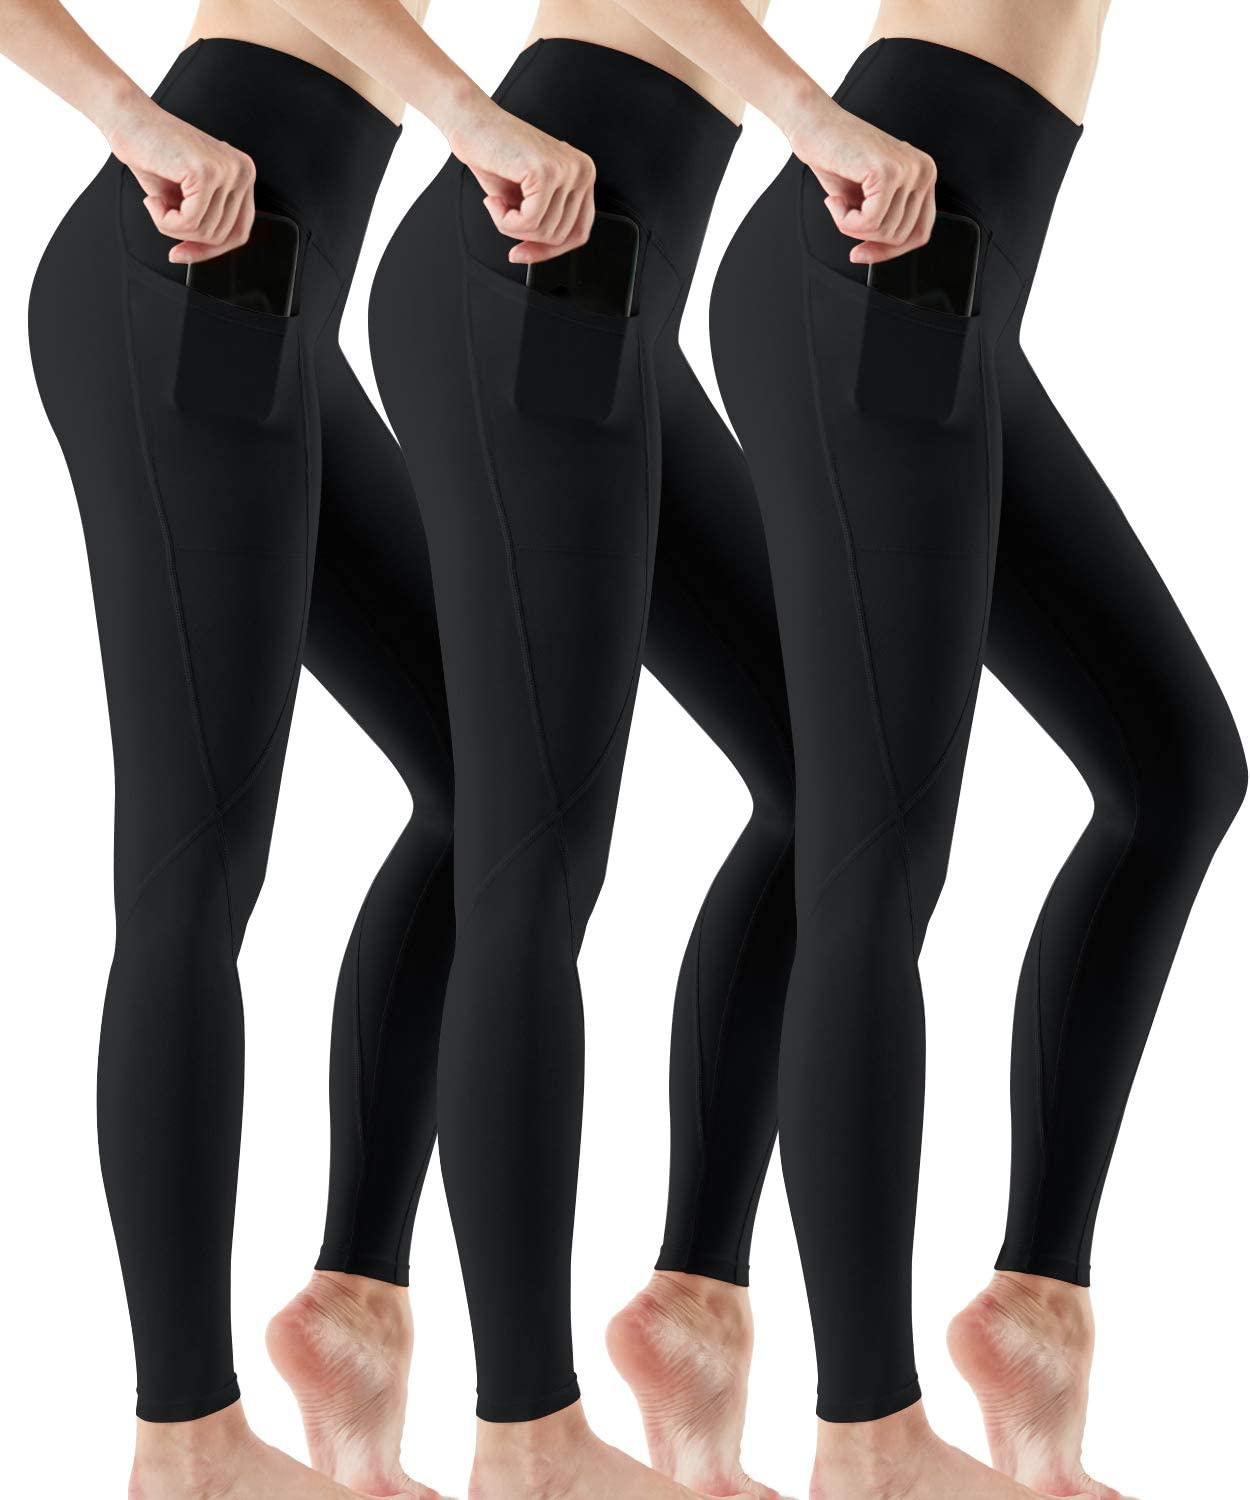 ATHLIO Womens (Pack of 2, 3) Yoga Pants High-Rise Tummy Control w Hidden/Side Pocket